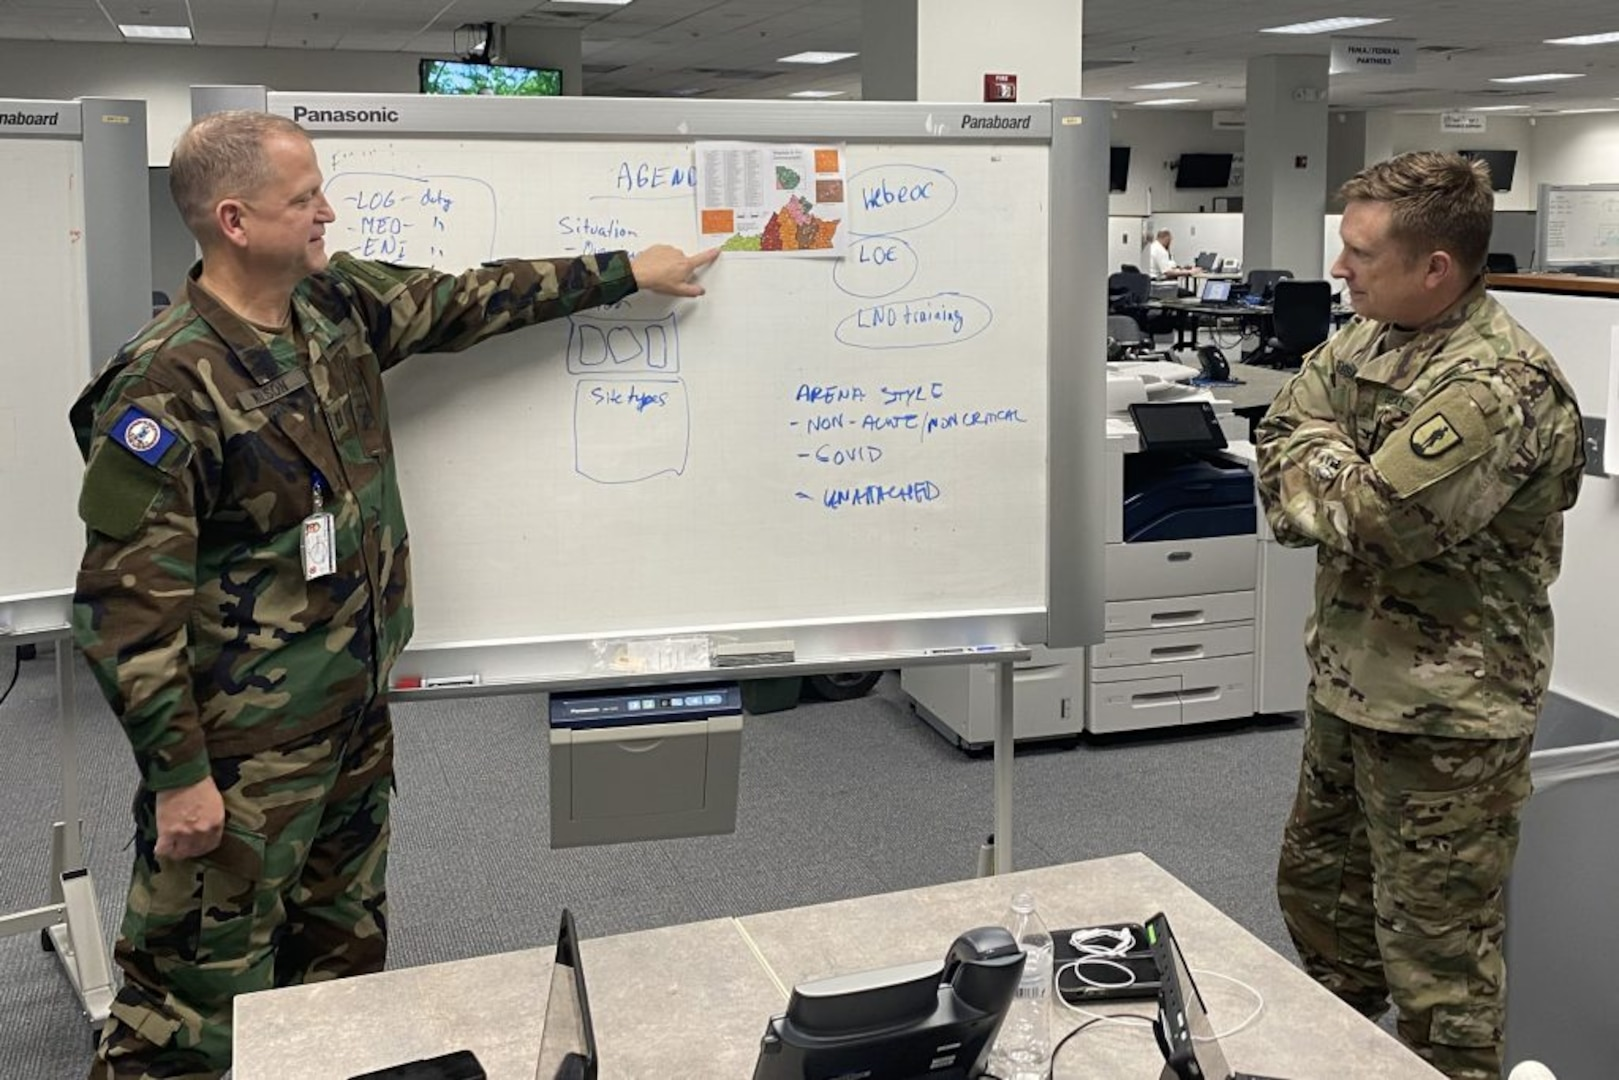 Va. Defense Force assisting with COVID-19 response